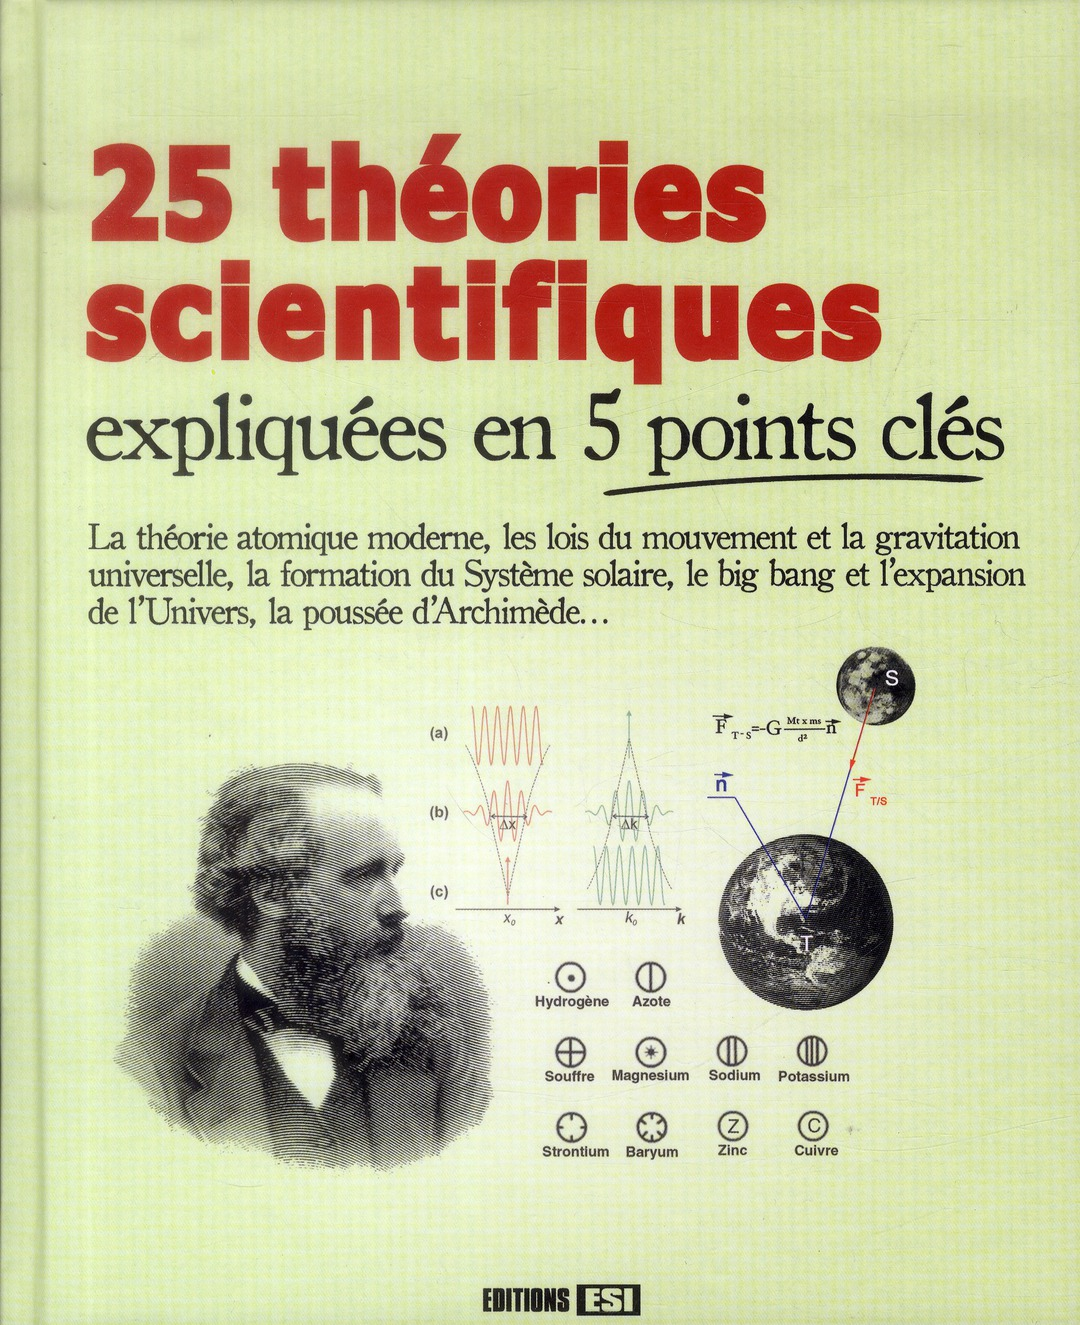 25 THEORIES SCIENTIFIQUES EXPLIQUEES EN 5 POINTS CLES